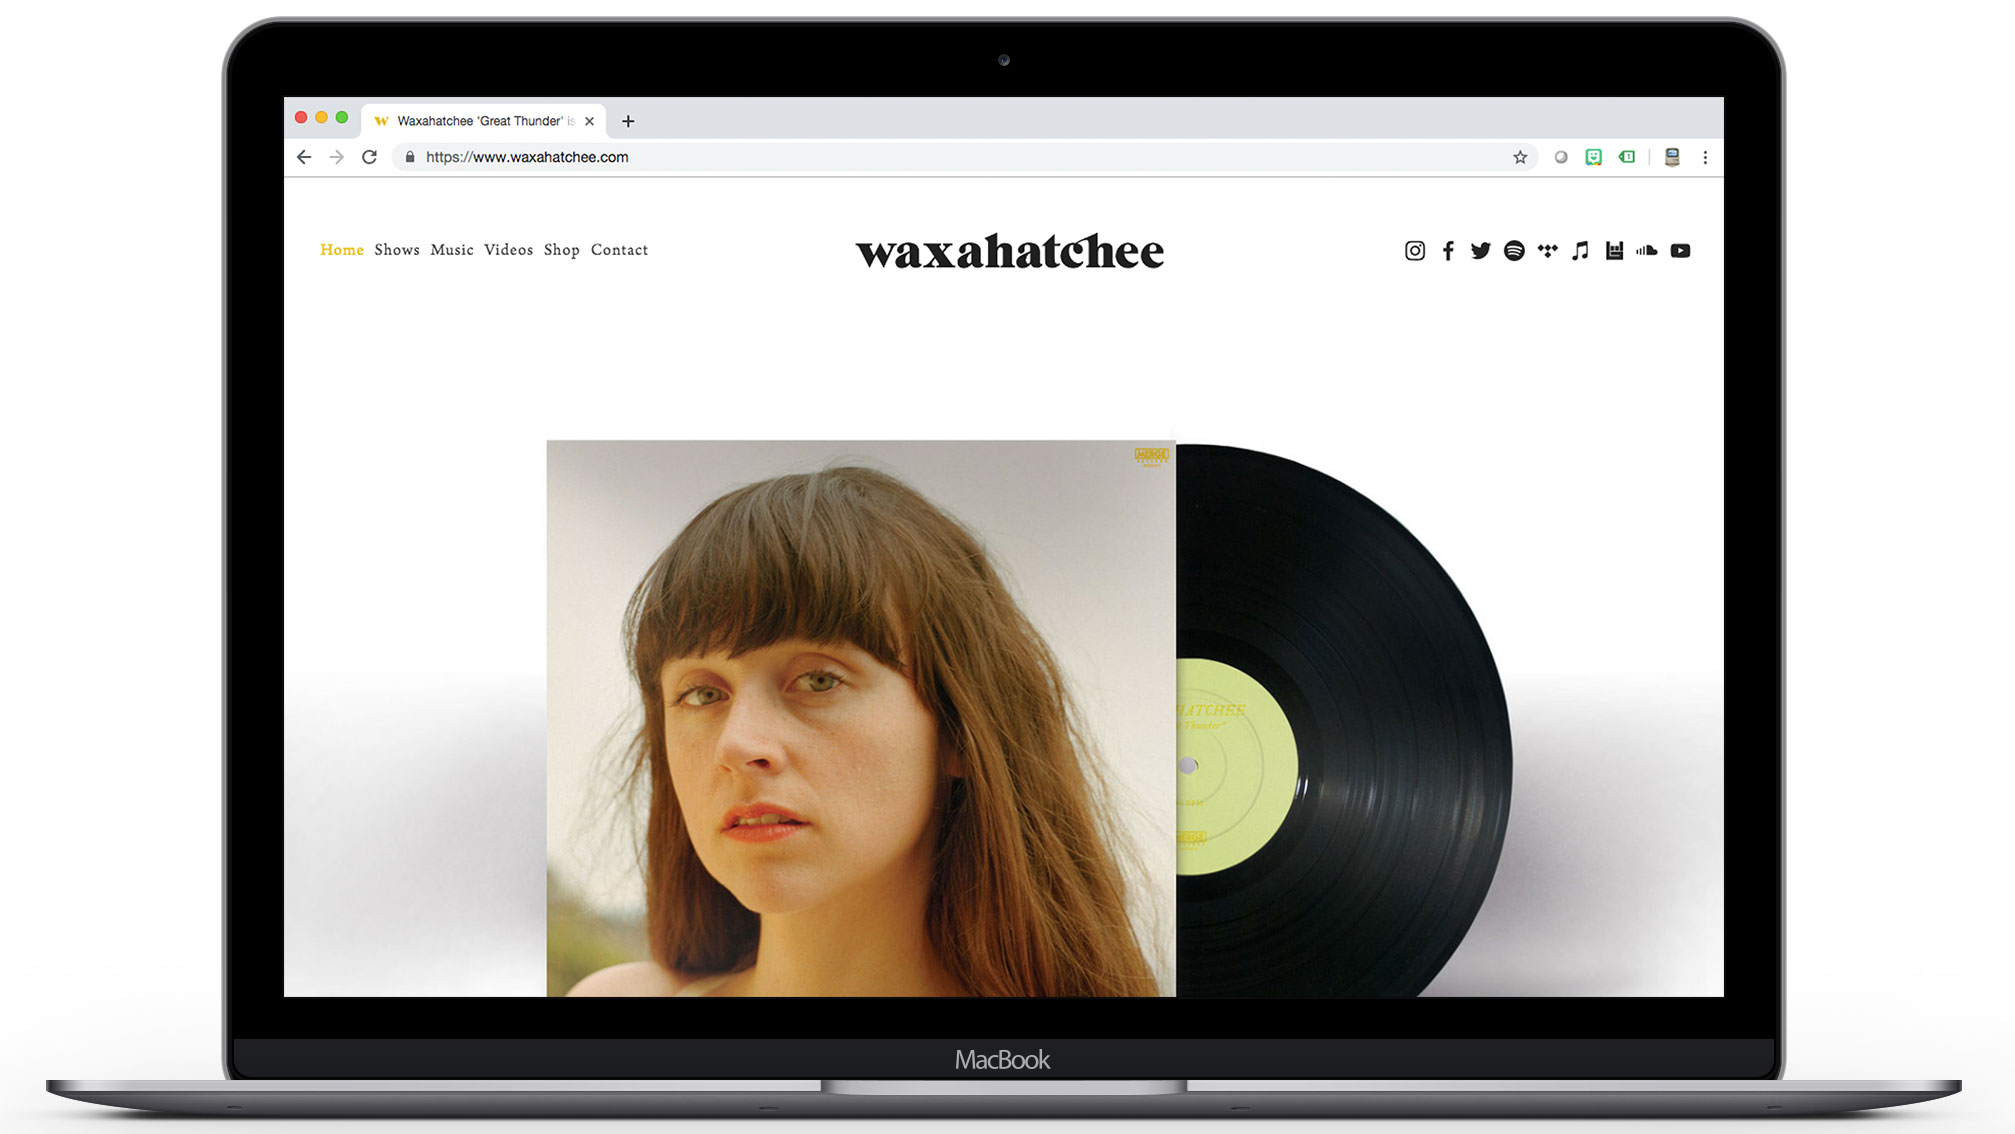 waxahatchee-website-design-aria-interactive.jpg